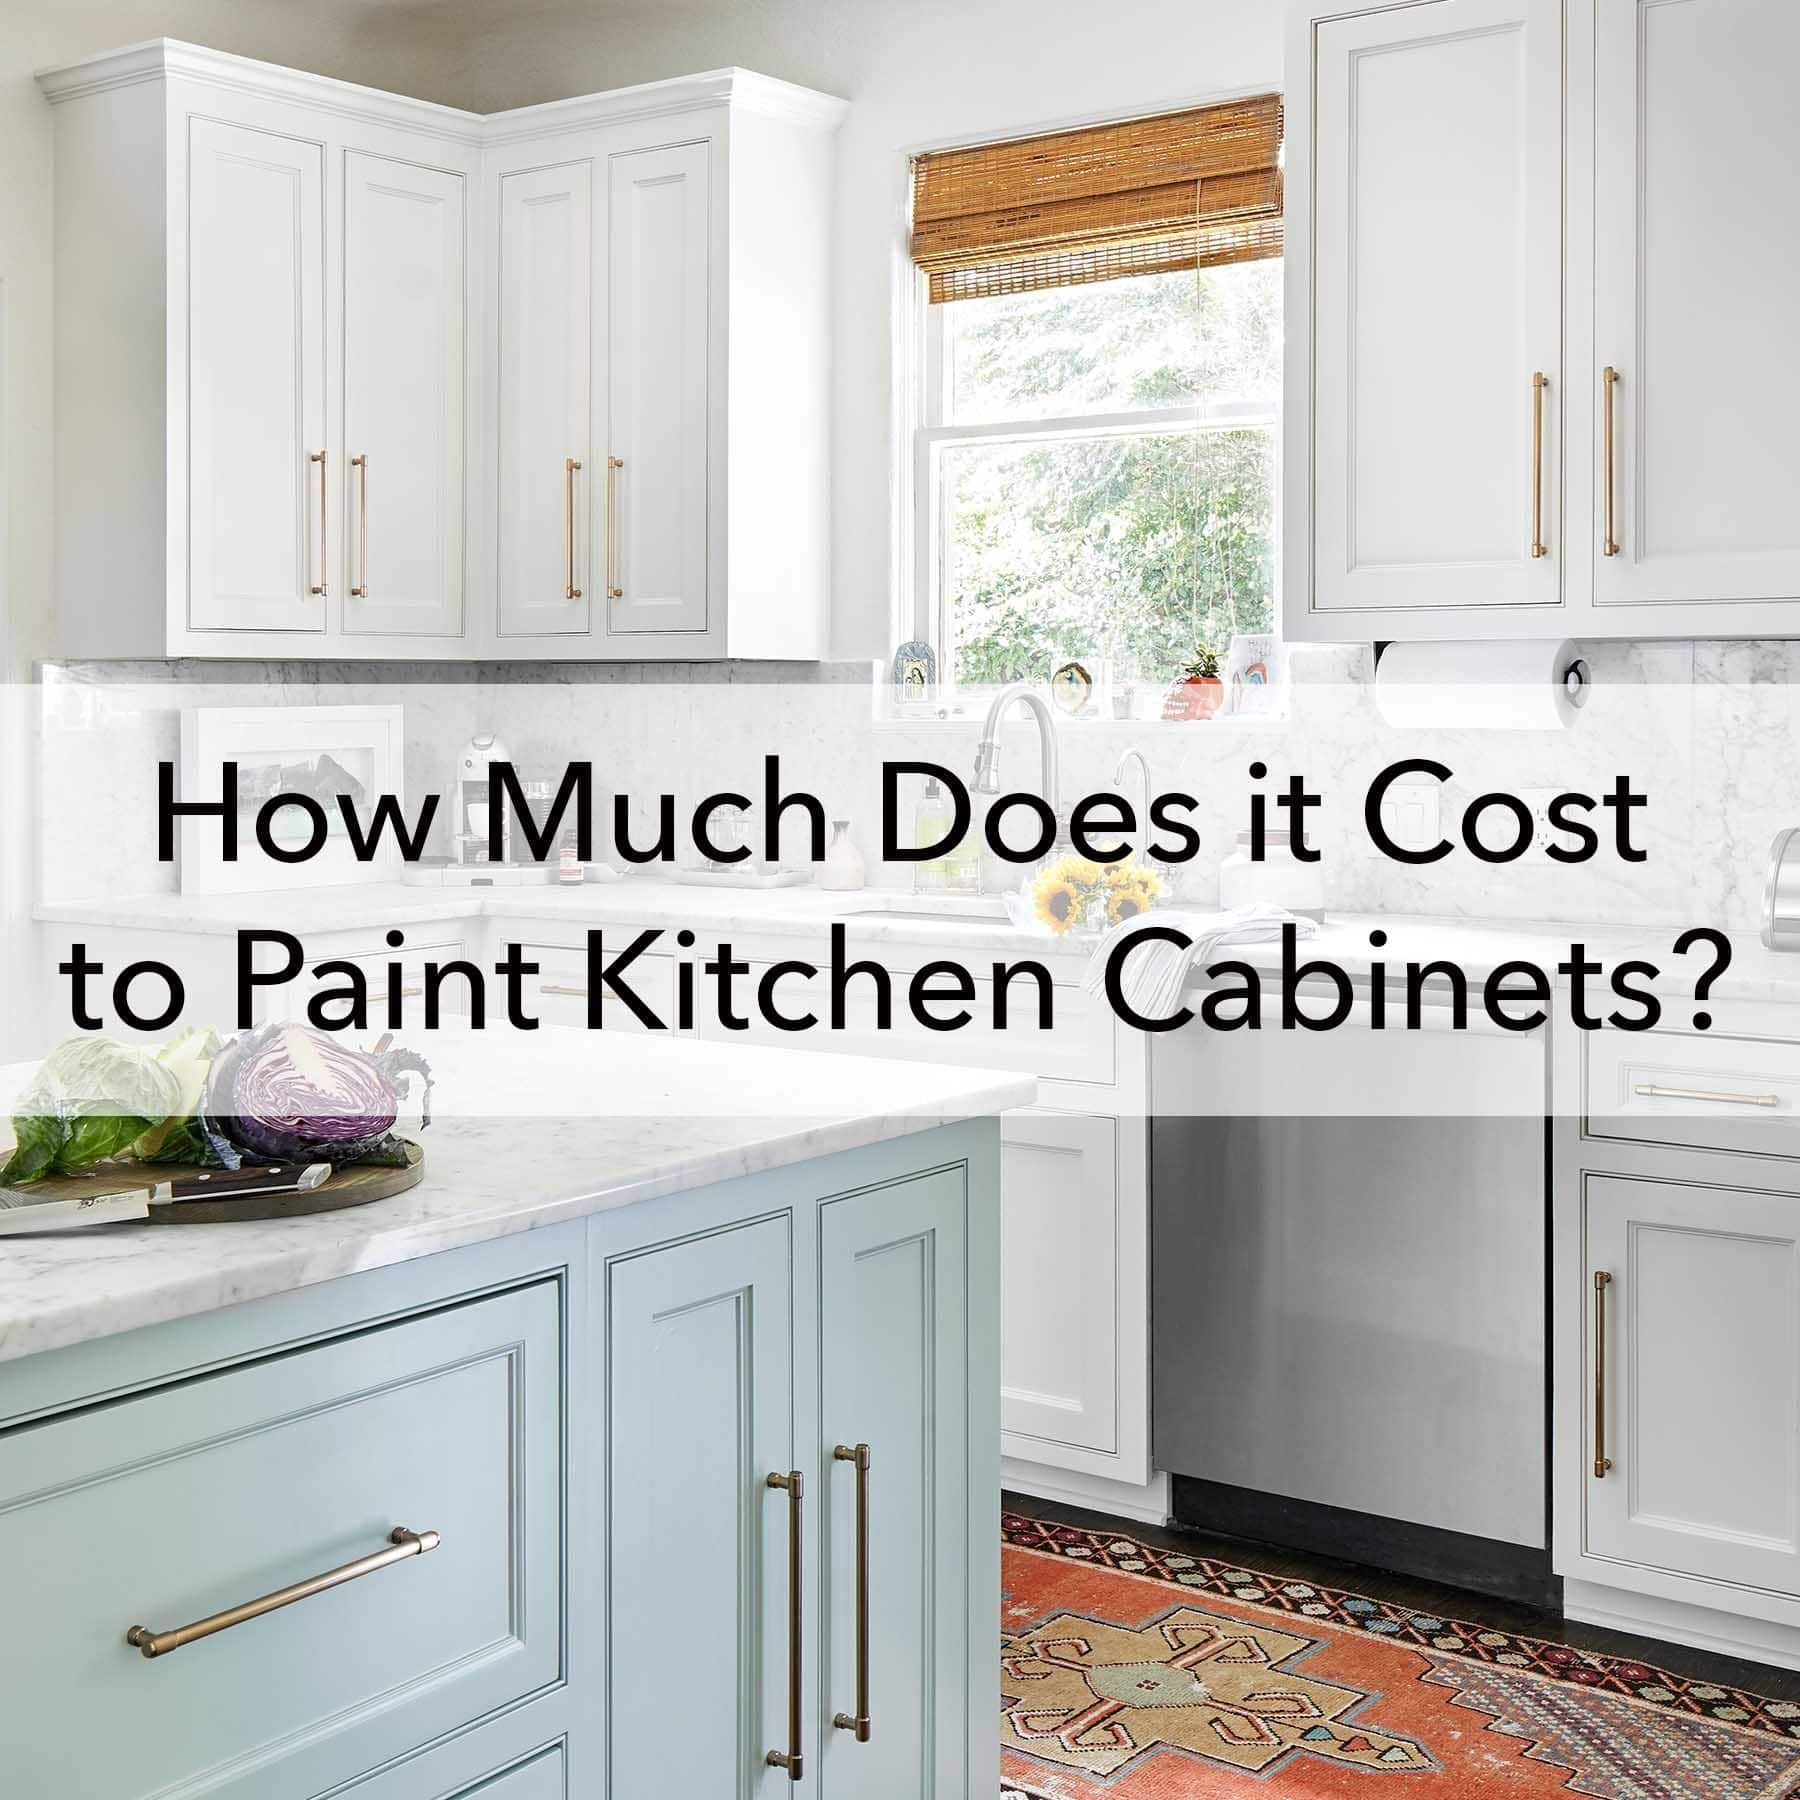 How Much Does It Cost To Paint Kitchen Cabinets Repainting Kitchen Cabinets Cost Of Kitchen Cabinets Painting Kitchen Cabinets